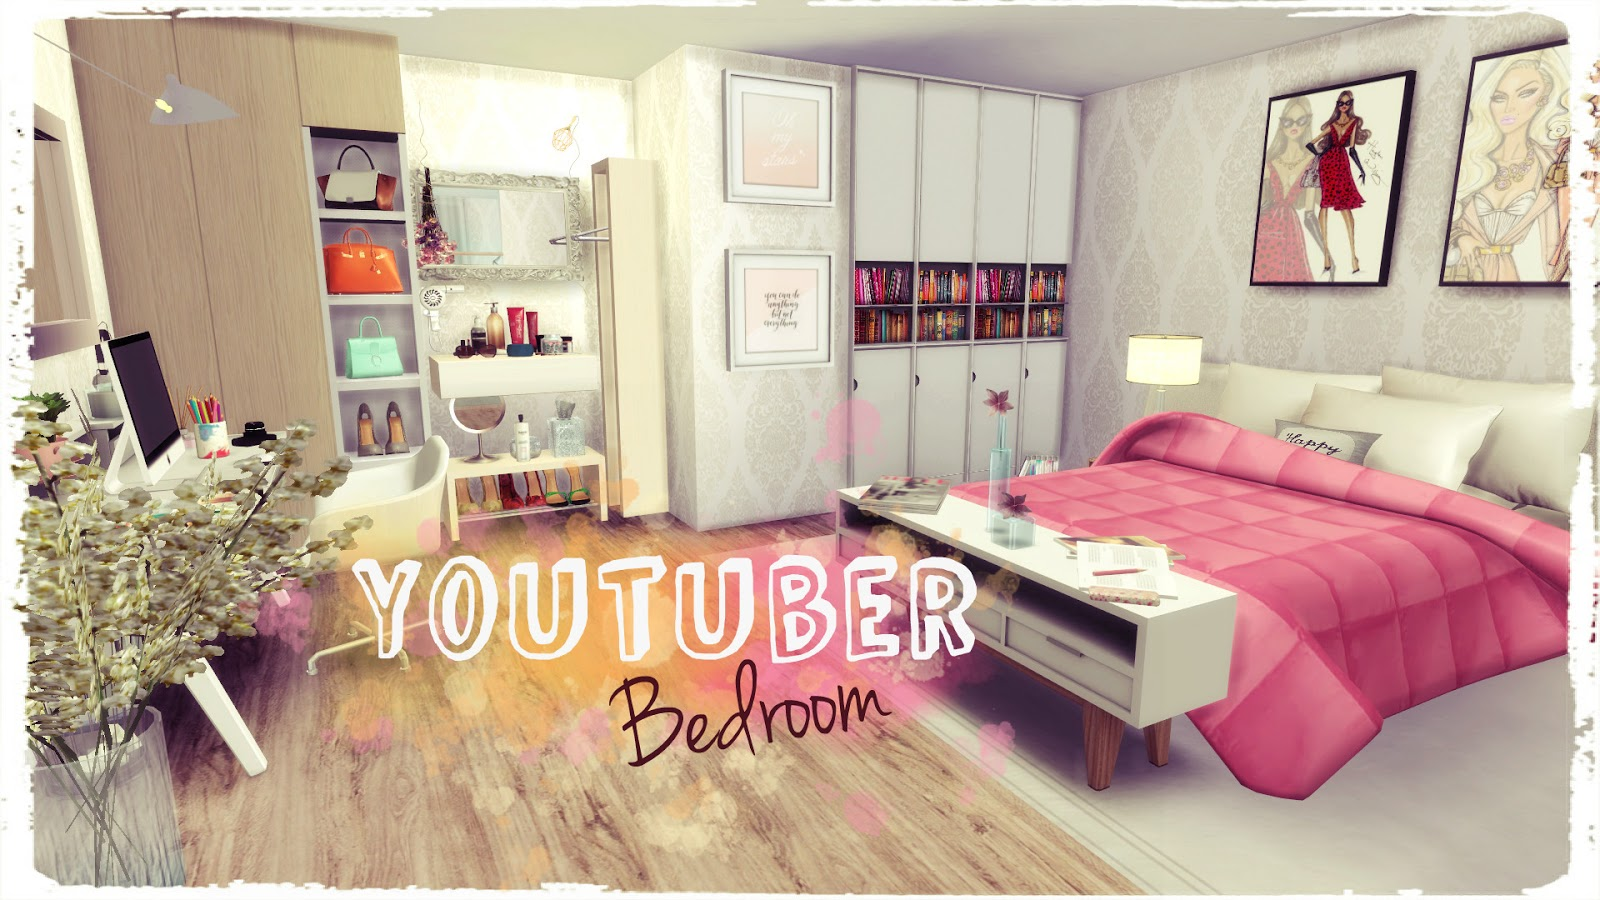 Sims 4 youtuber bedroom dinha for Bedroom designs sims 4